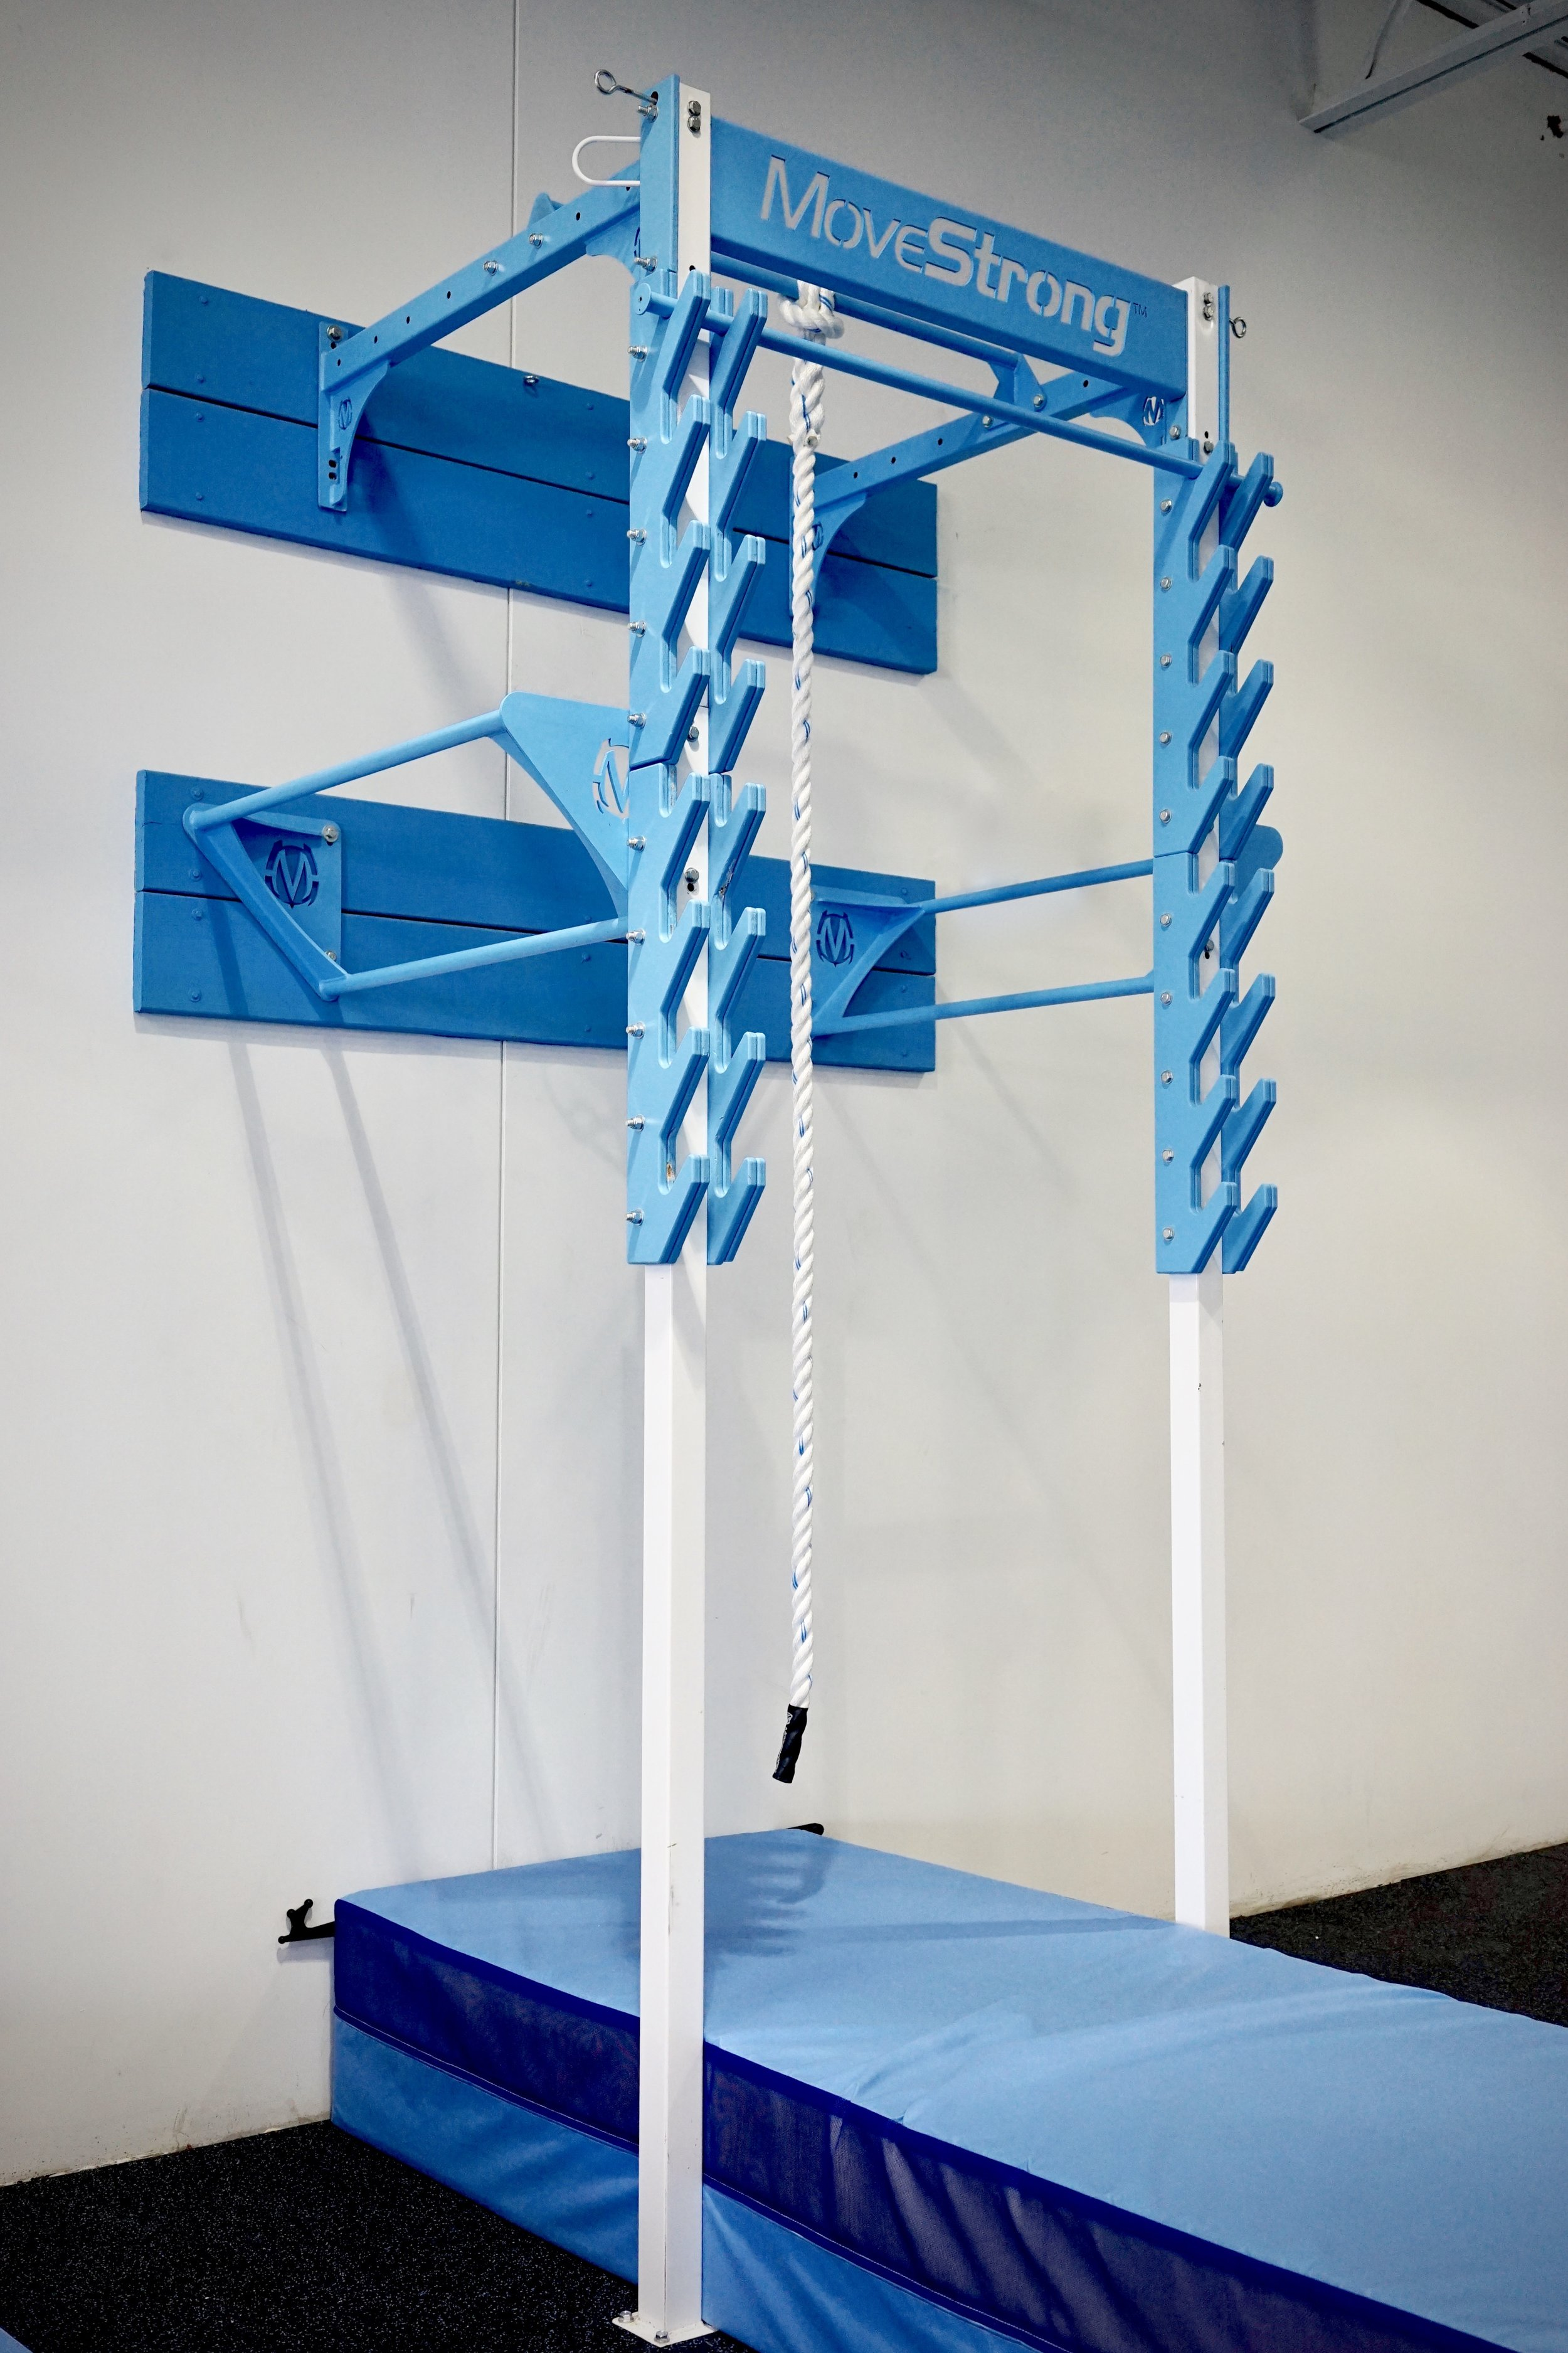 New Movestrong Salmon Ladder Now Available Movestrong